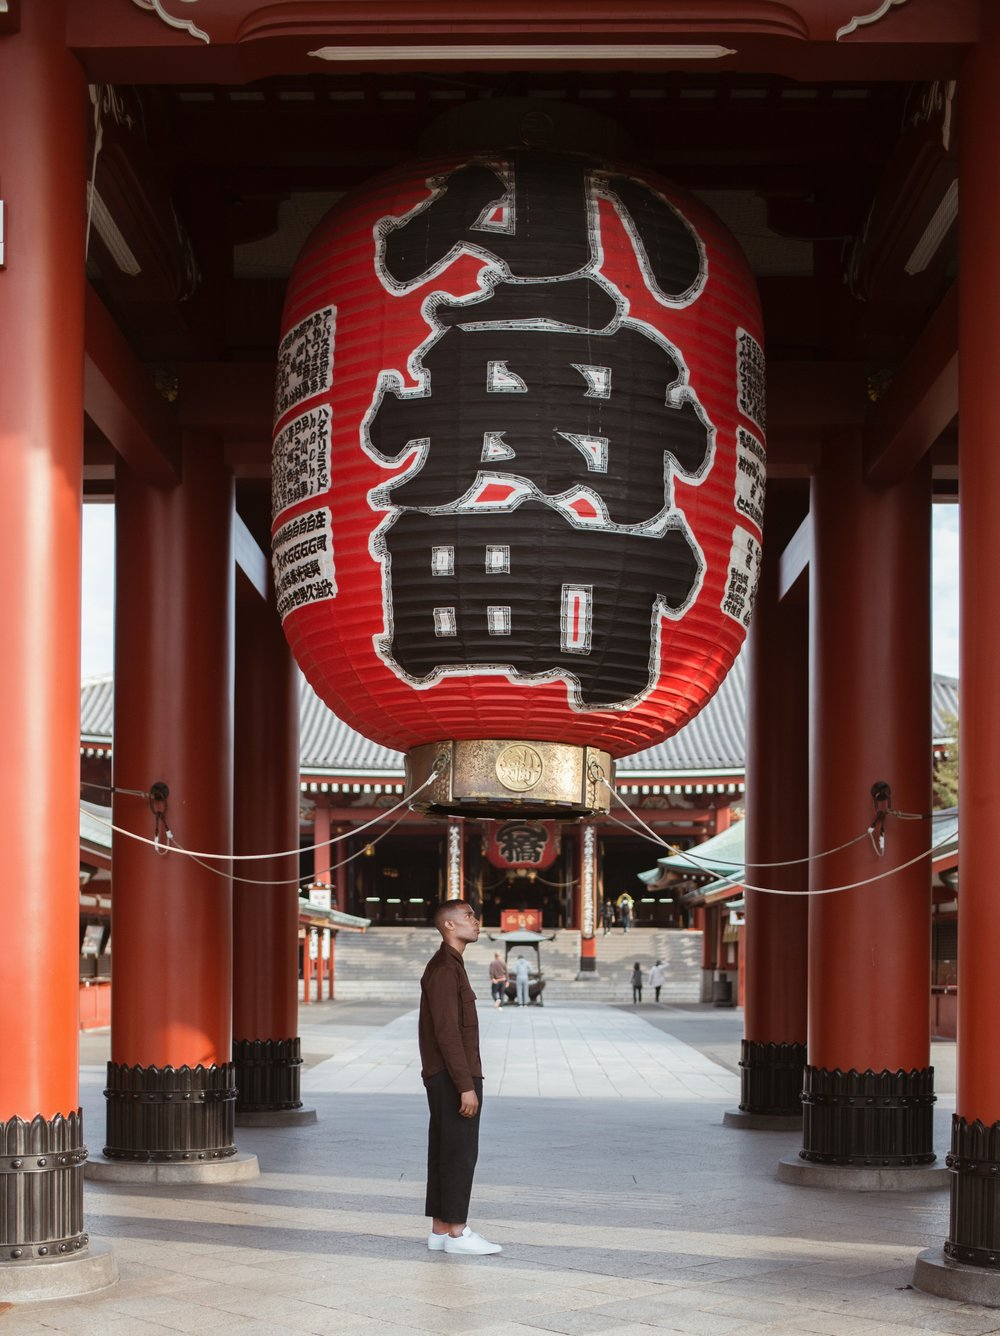 The-Look-Principle-Japanese-Shrines-And-Temples-2.jpg